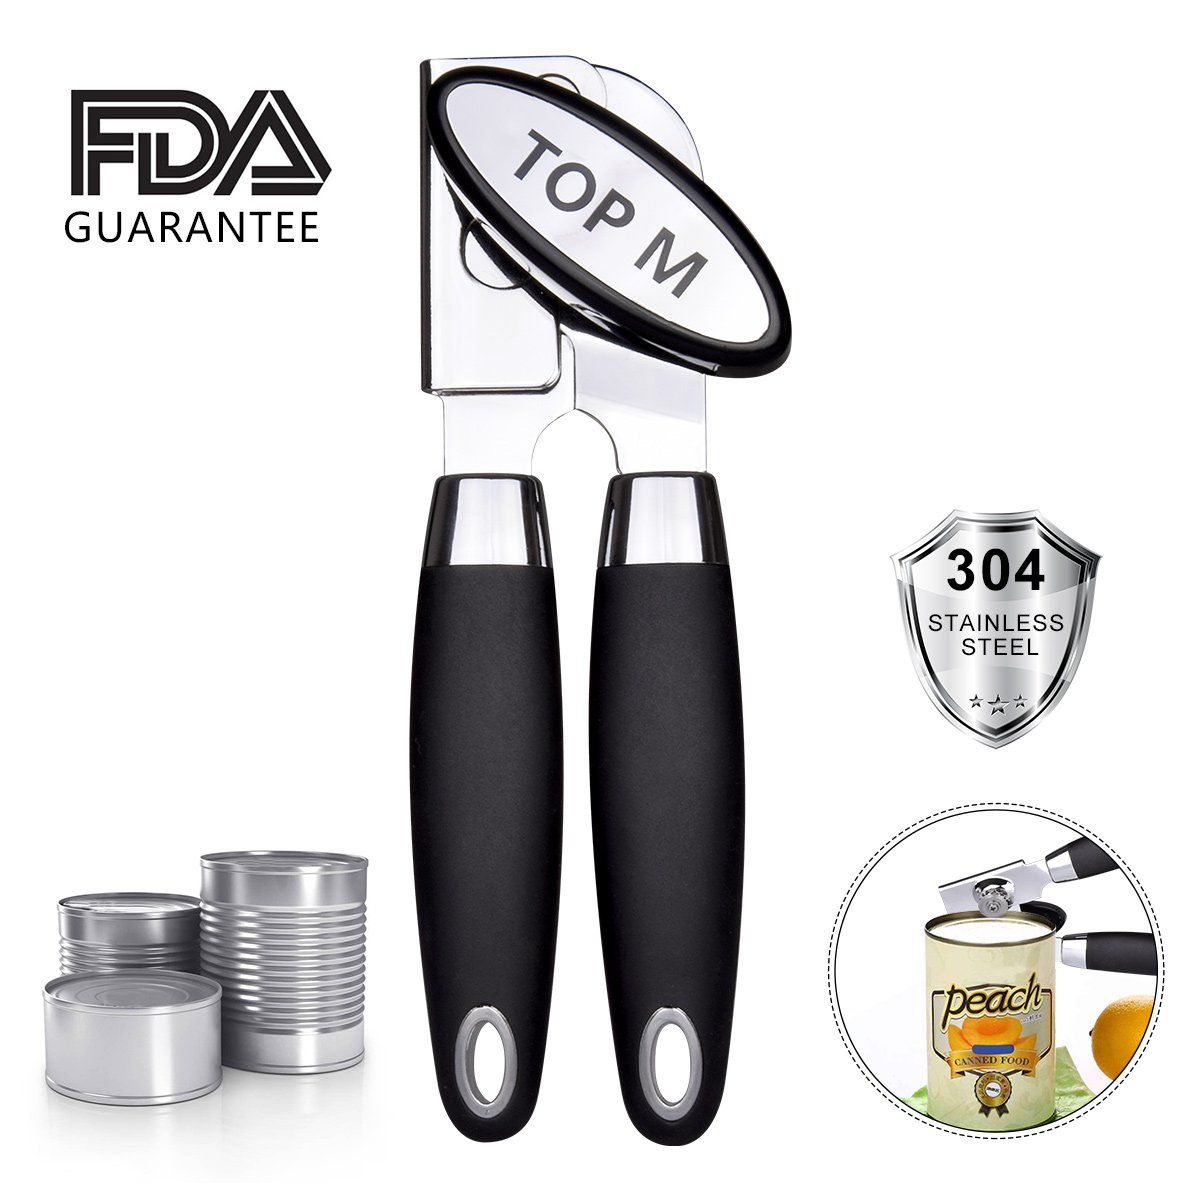 Can Opener,Can Opener Manual Food-Safe FDA Stainless Steel, NO-Rust, Ergonomic Anti Slip Design Big Knob For Easy Turn,Home Restaurant Smooth Edge Can Opener Can Openers Suitable For The Elderly